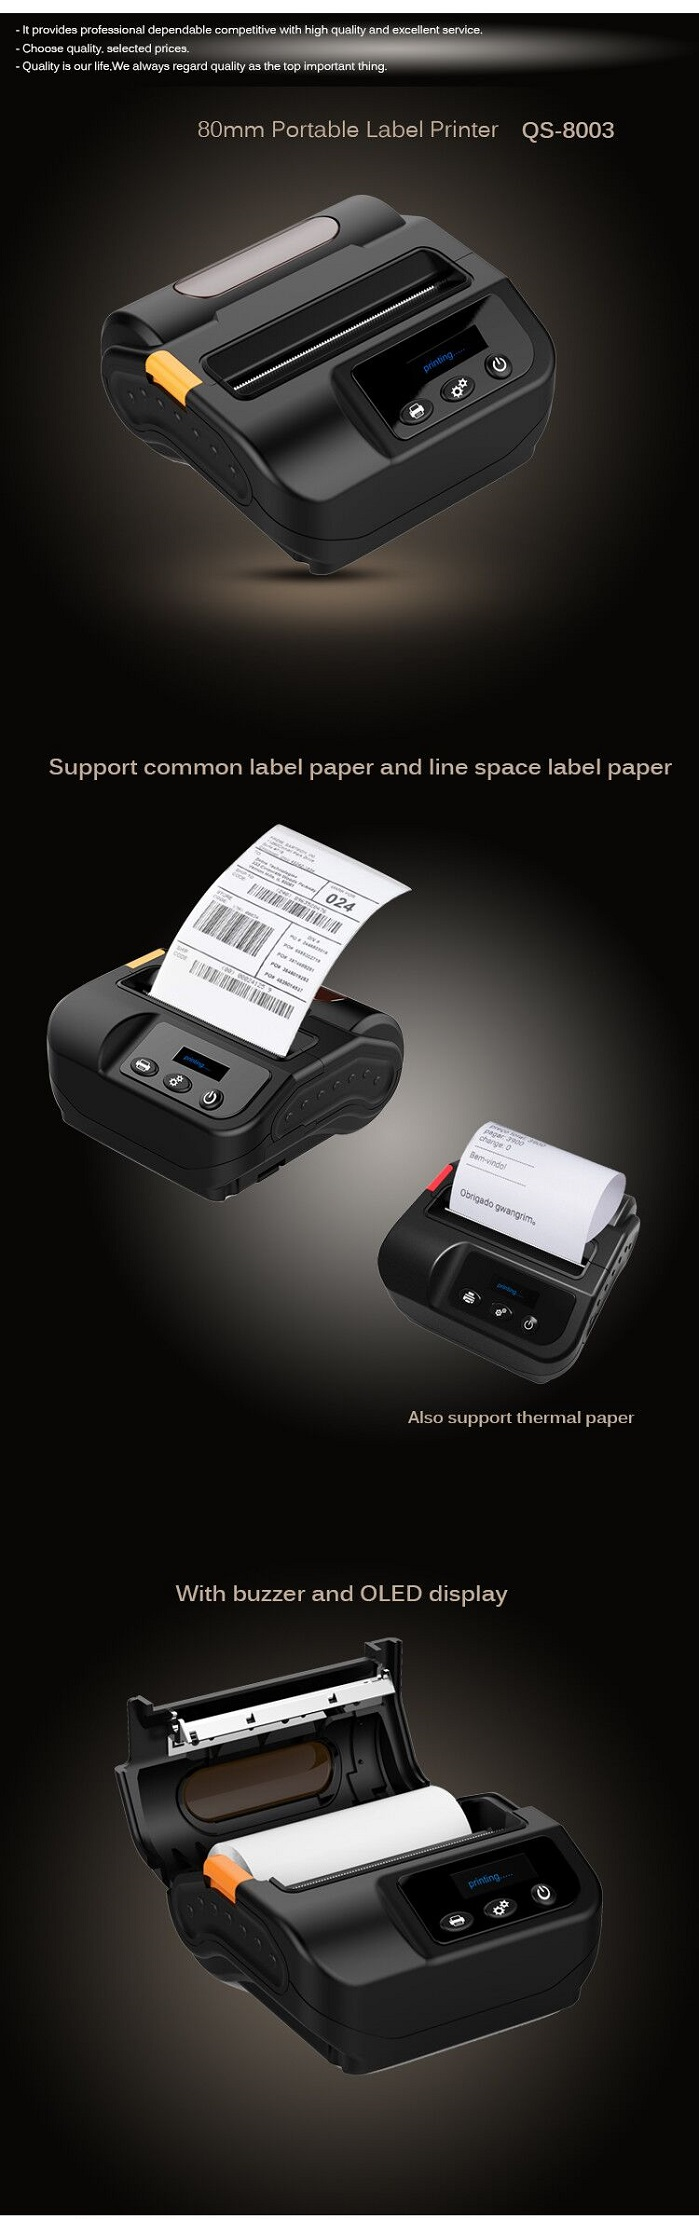 80mm thermal printer (2)